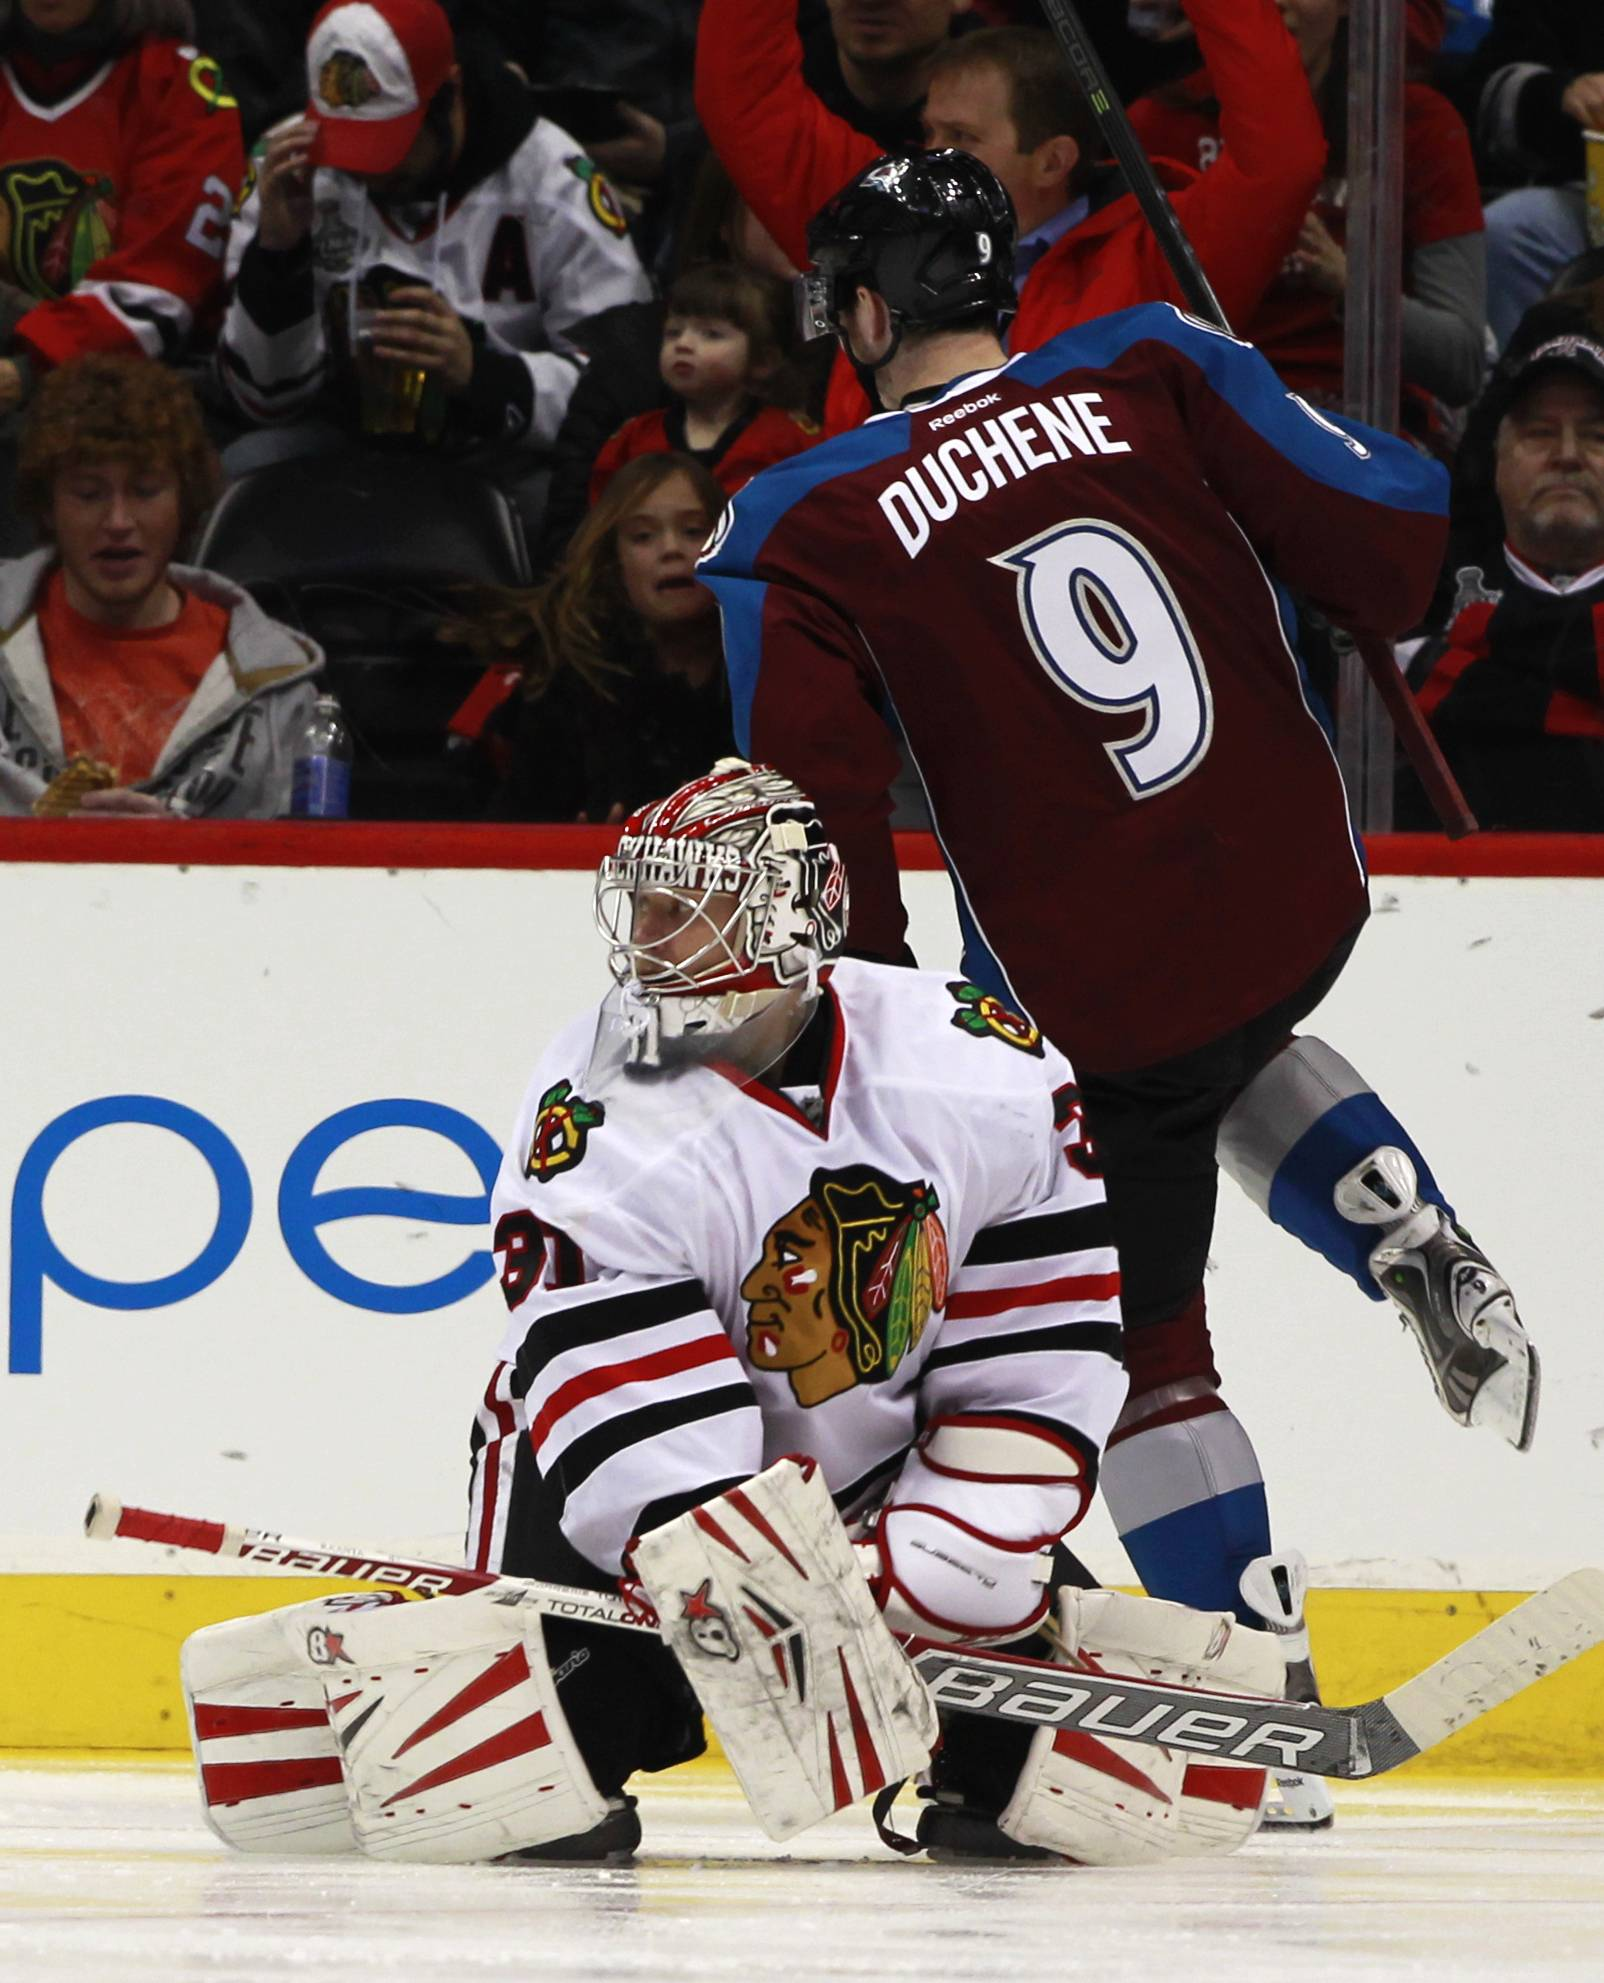 Blackhawks goalie Antti Raanta looks back after giving up a goal to Matt Duchene of the Avalanche in the second period Wednesday in Denver.